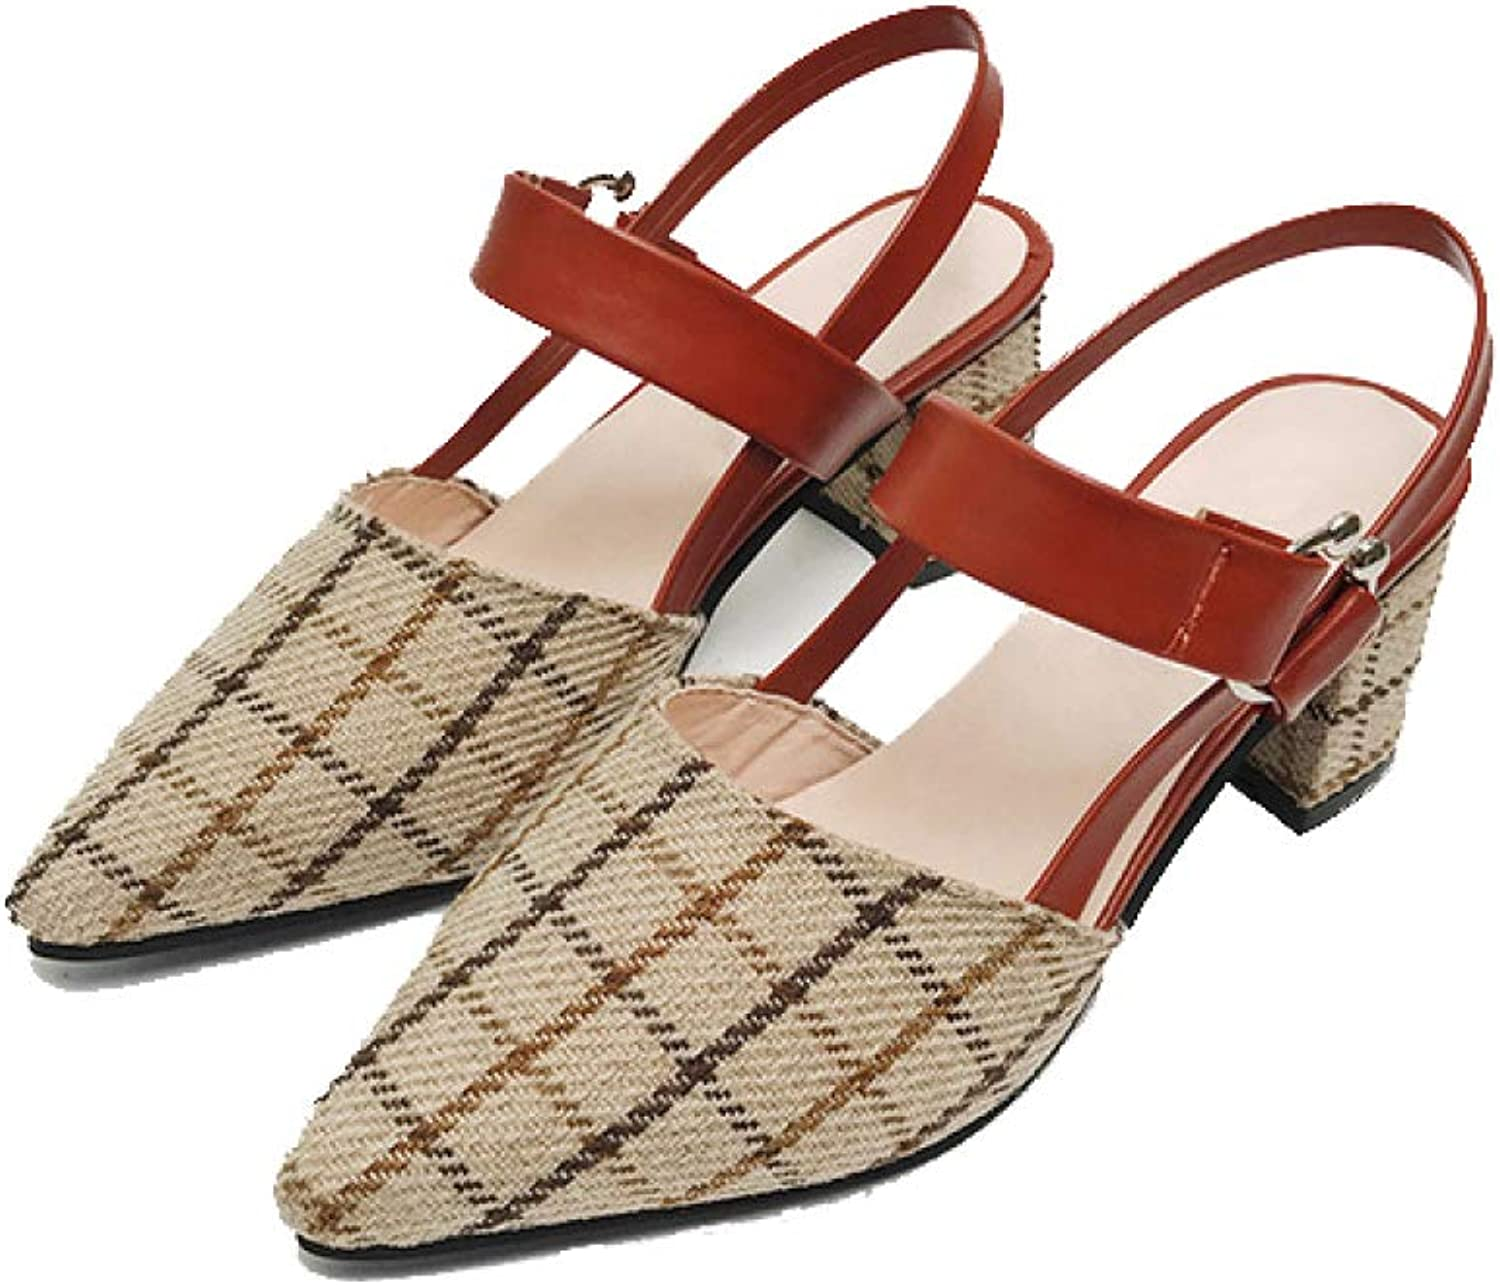 MEIZOKEN Womens Ankle Strap Slingback Chunky Heel Sandals Fashion Pointed Toe Checkered Pumps Sandal